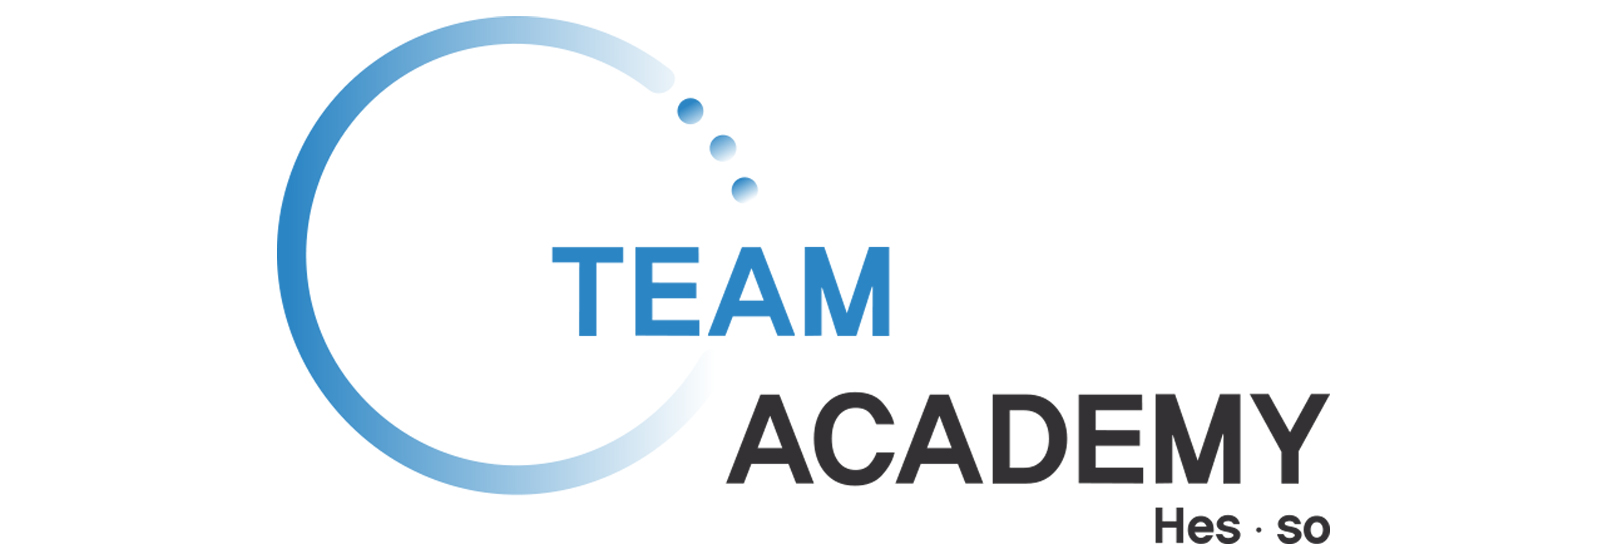 Team Academy: retrospective of the first year